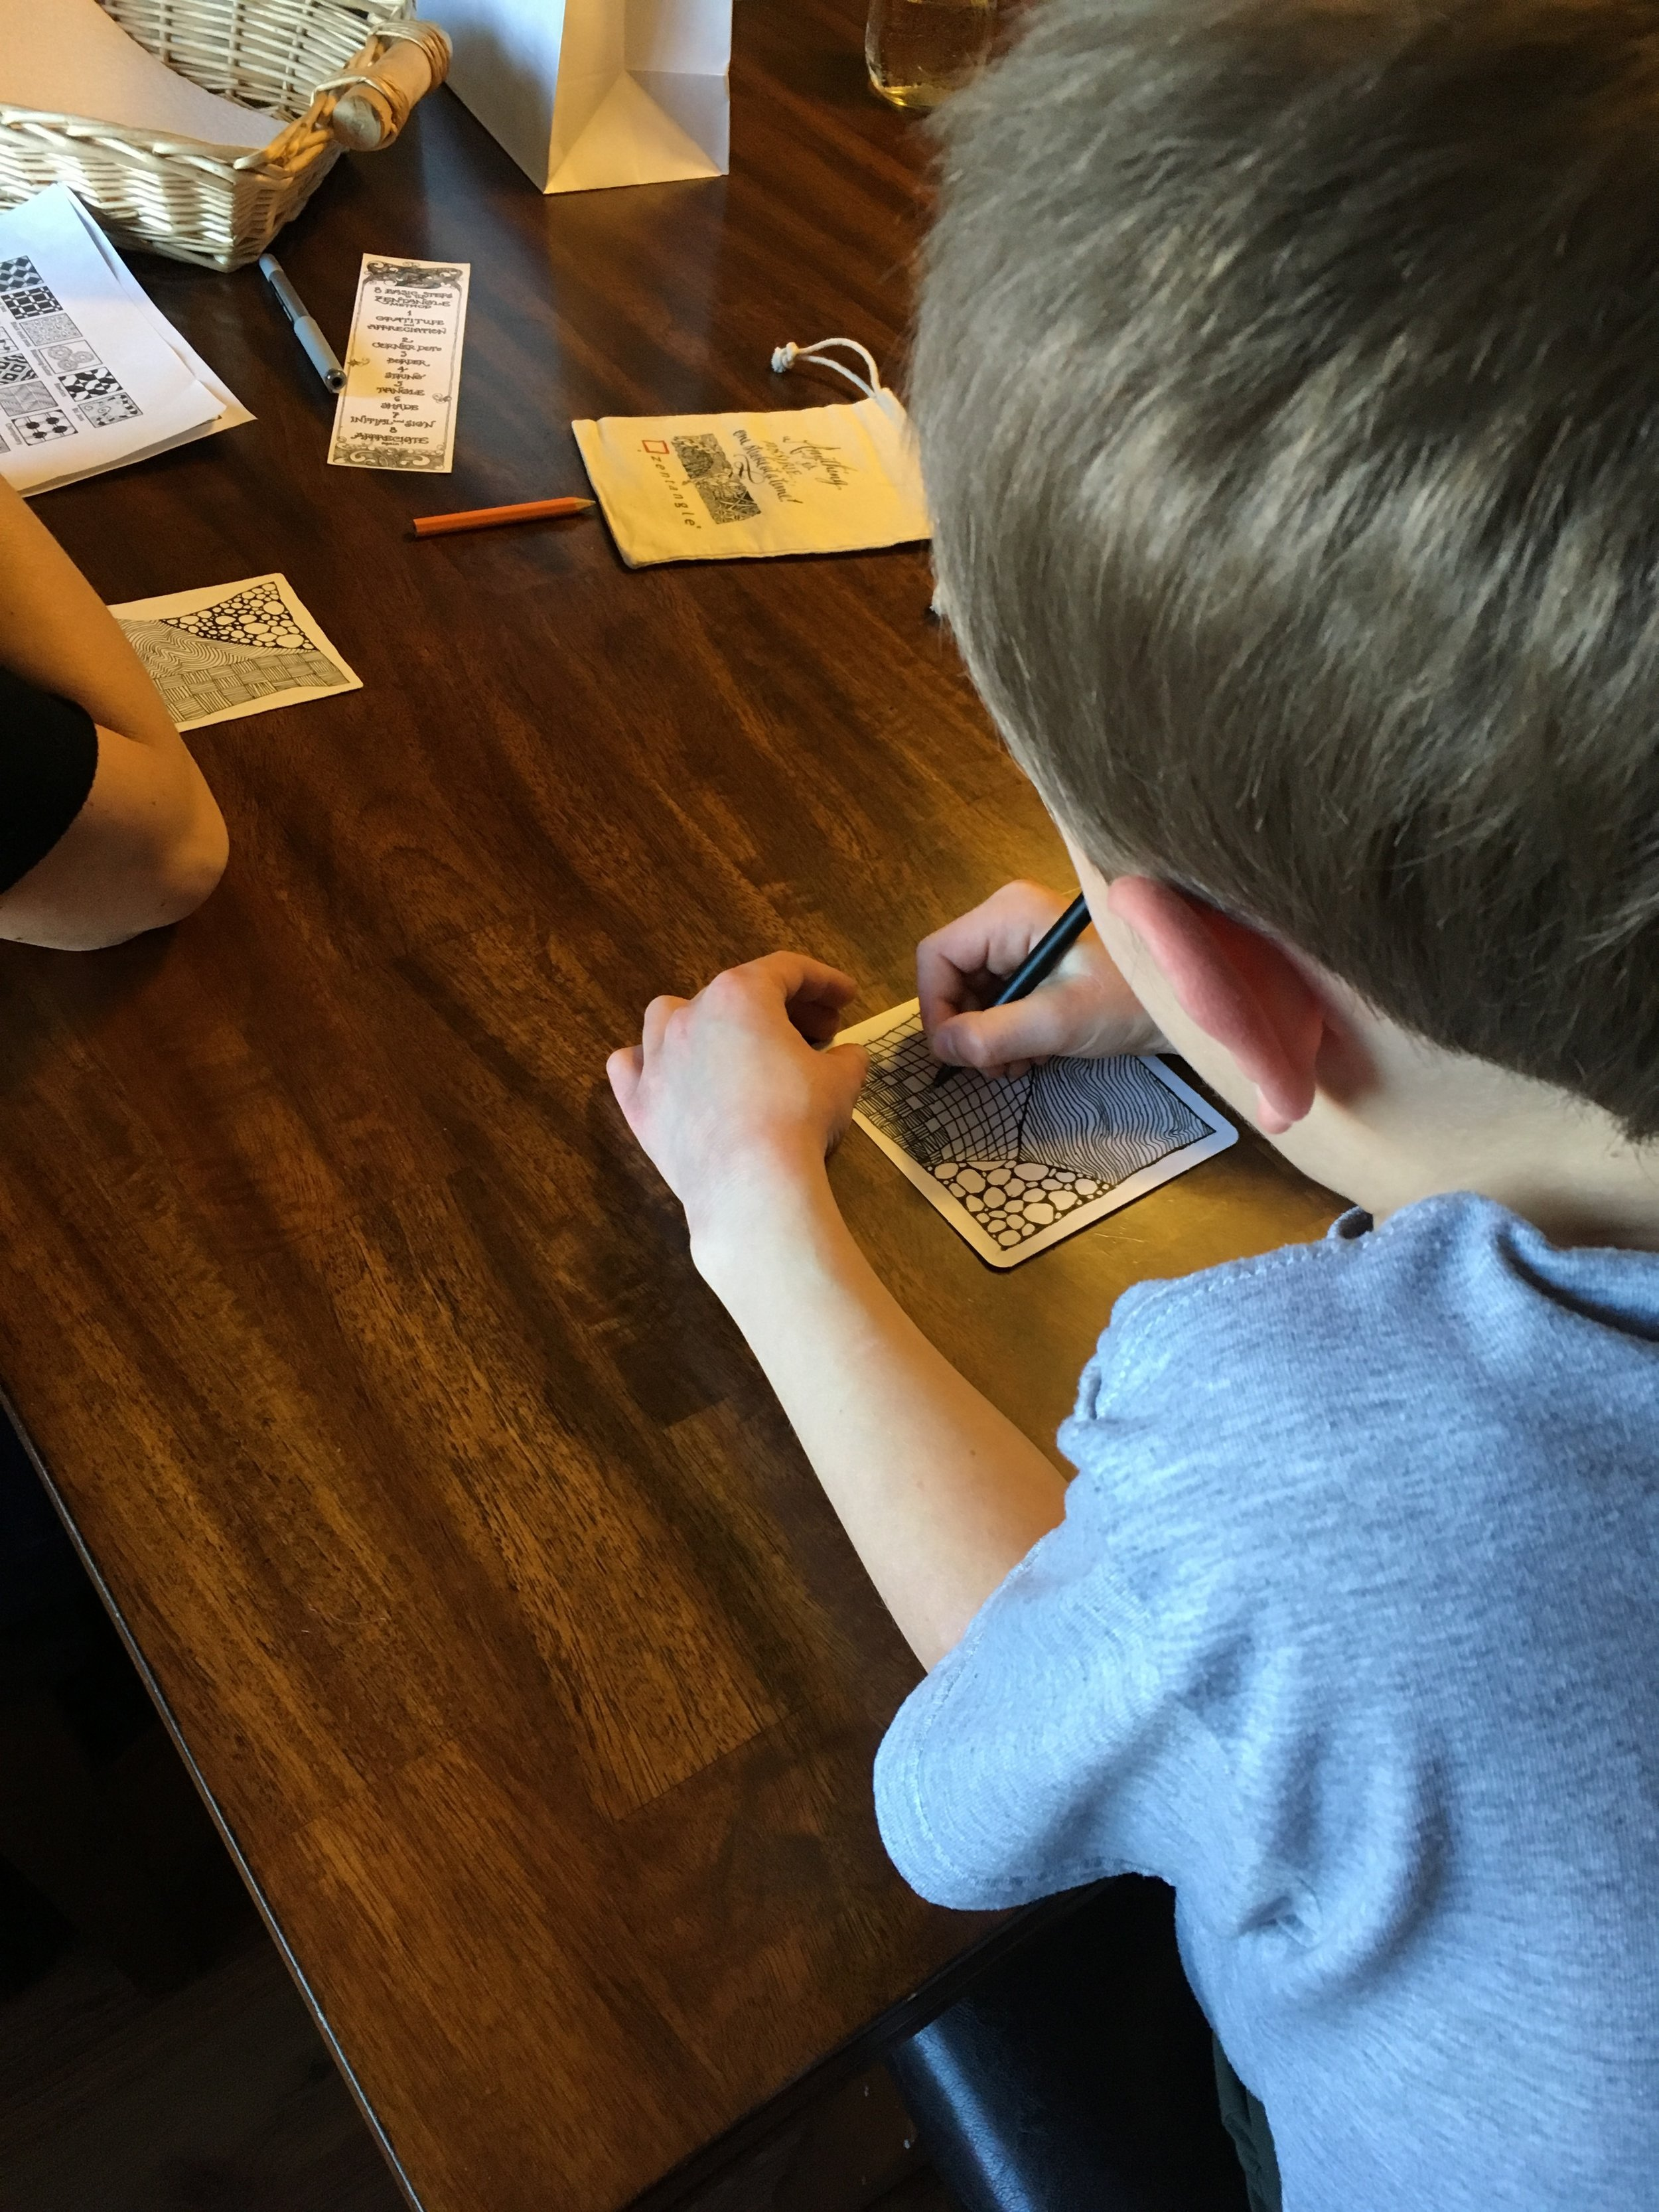 Kids 'n art - Let your kids from 6-18 yrs. old have fun exploring different art forms. Zentangle is a great activity for them to not only have fun drawing, but it also increases attention to detail and attention span, improves handwriting and fine-motor coordination, and provides a way for self-expression and self-calming.